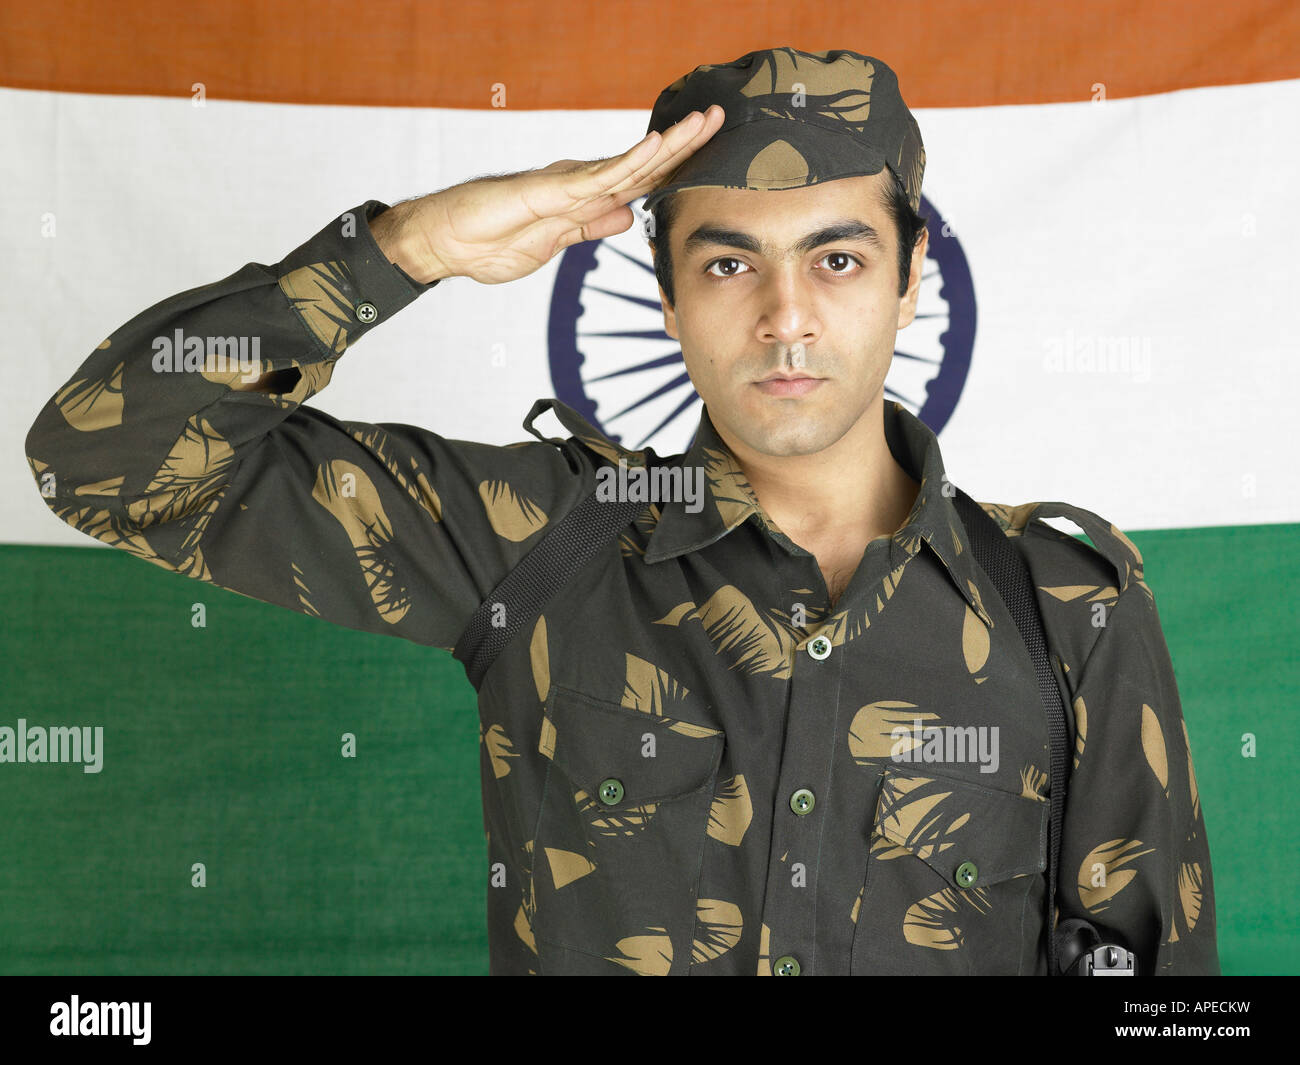 Salute | Military Wiki | FANDOM powered by Wikia